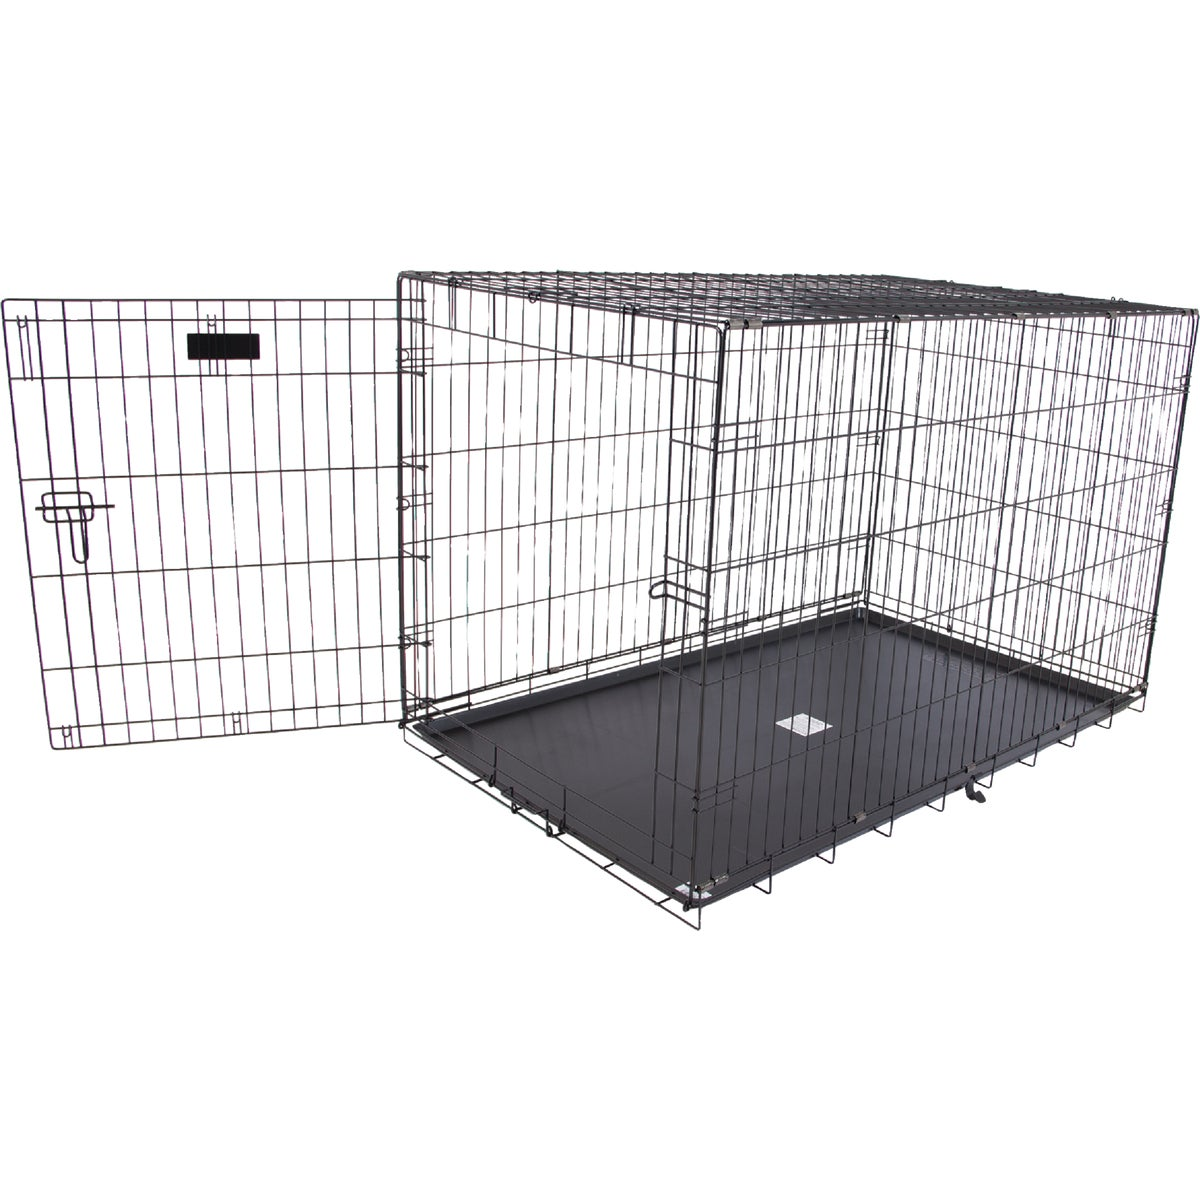 Petmate Doskocil 48X30X33 DOG CRT KENNEL 21035